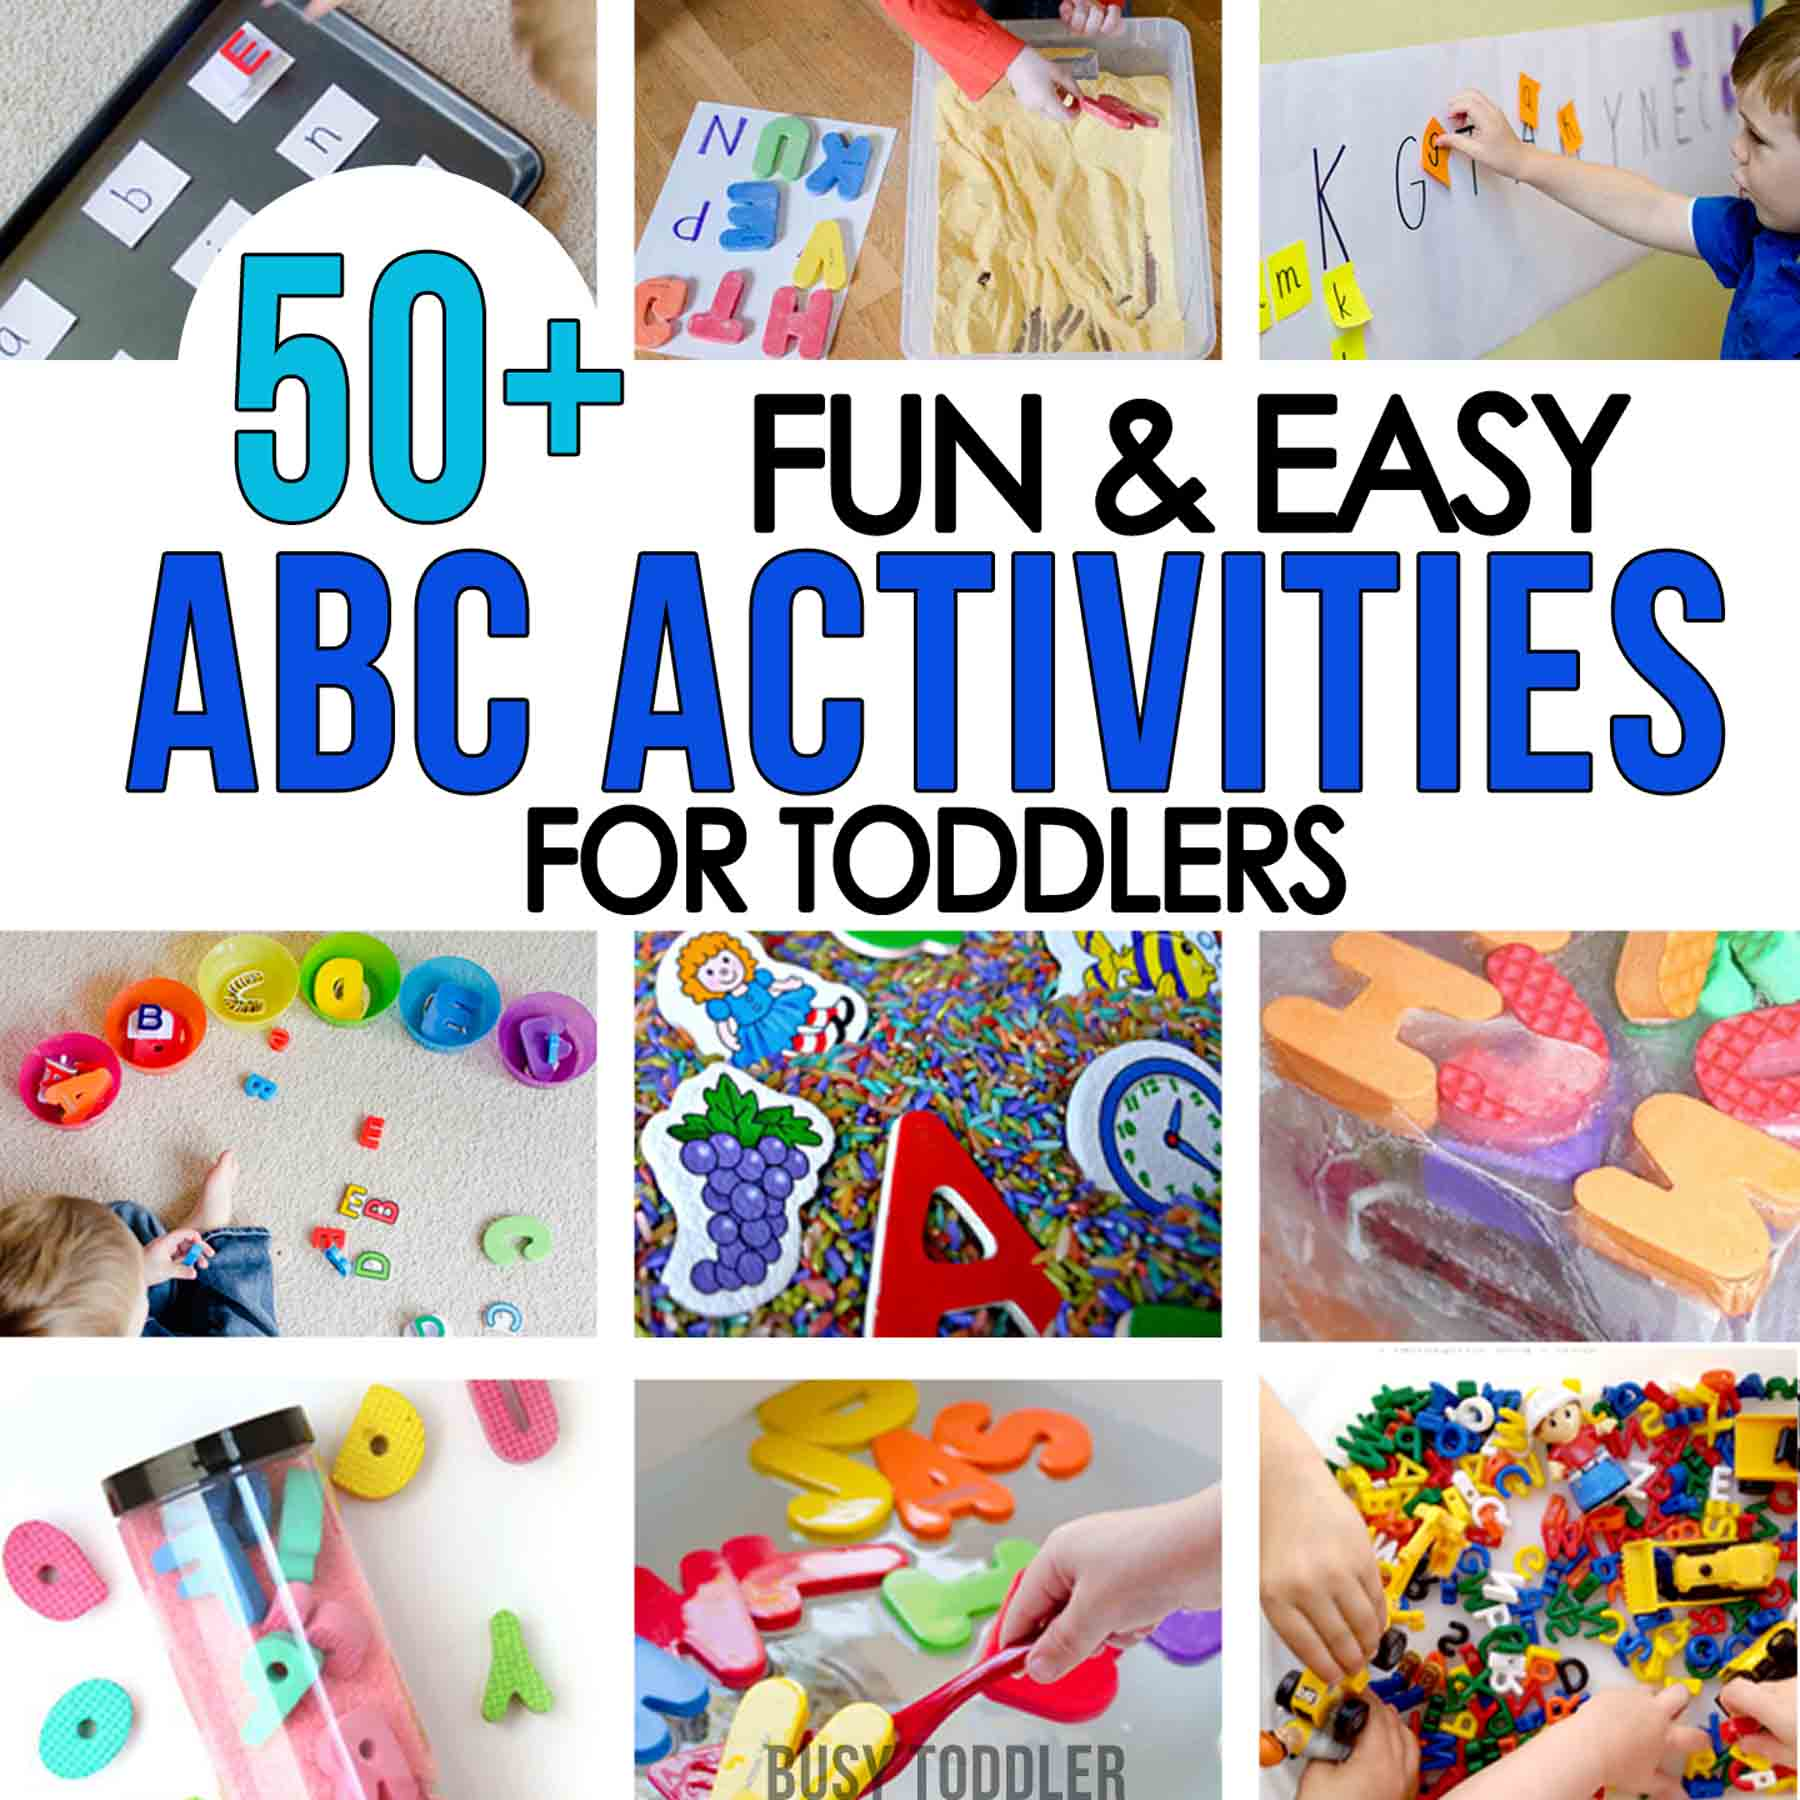 50+ Alphabet Activities for Toddlers